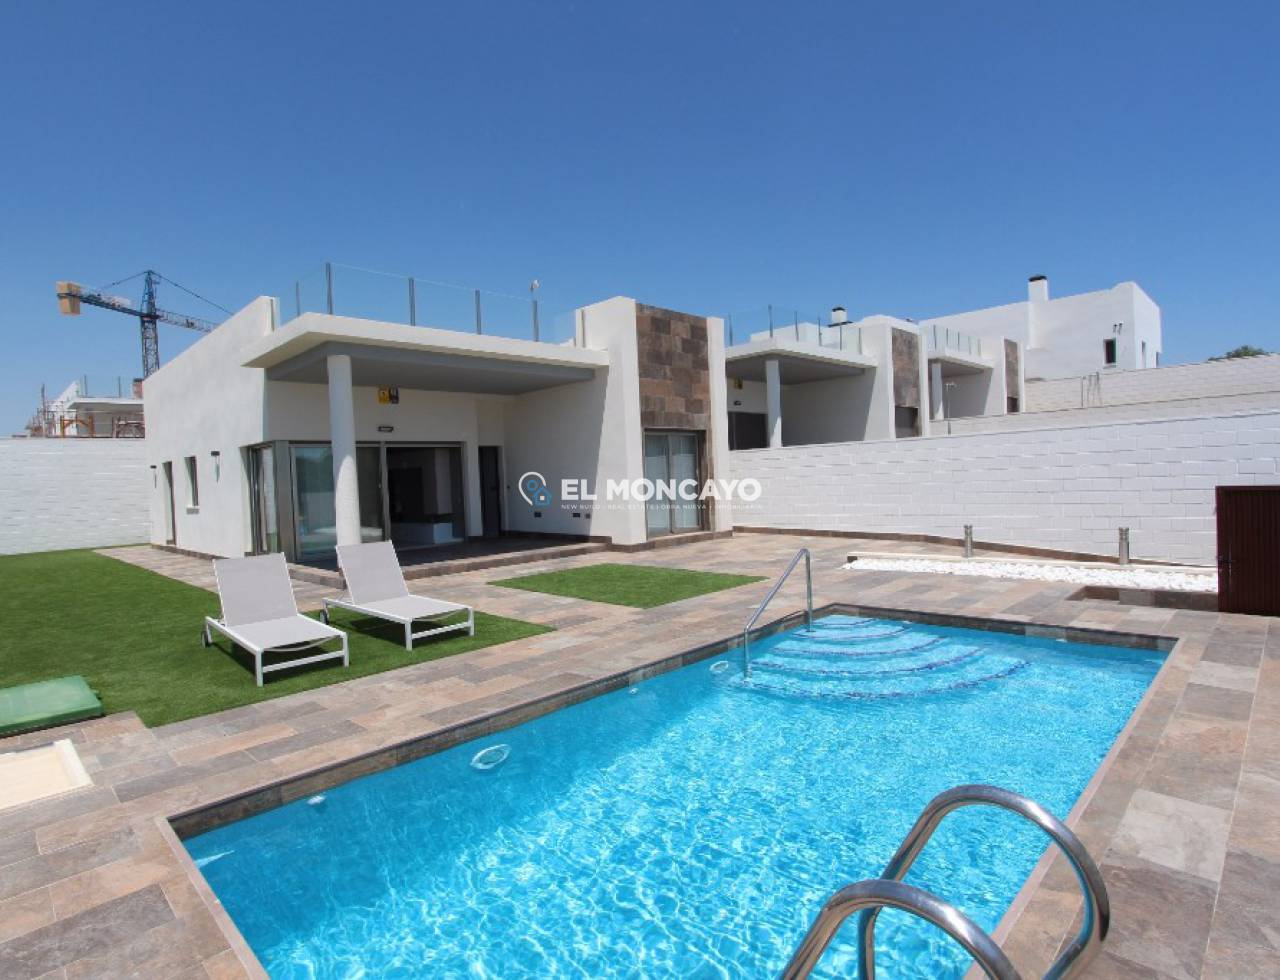 New build villa in Villamartin - Orihuela Costa - Costa Blanca south 142 (1)